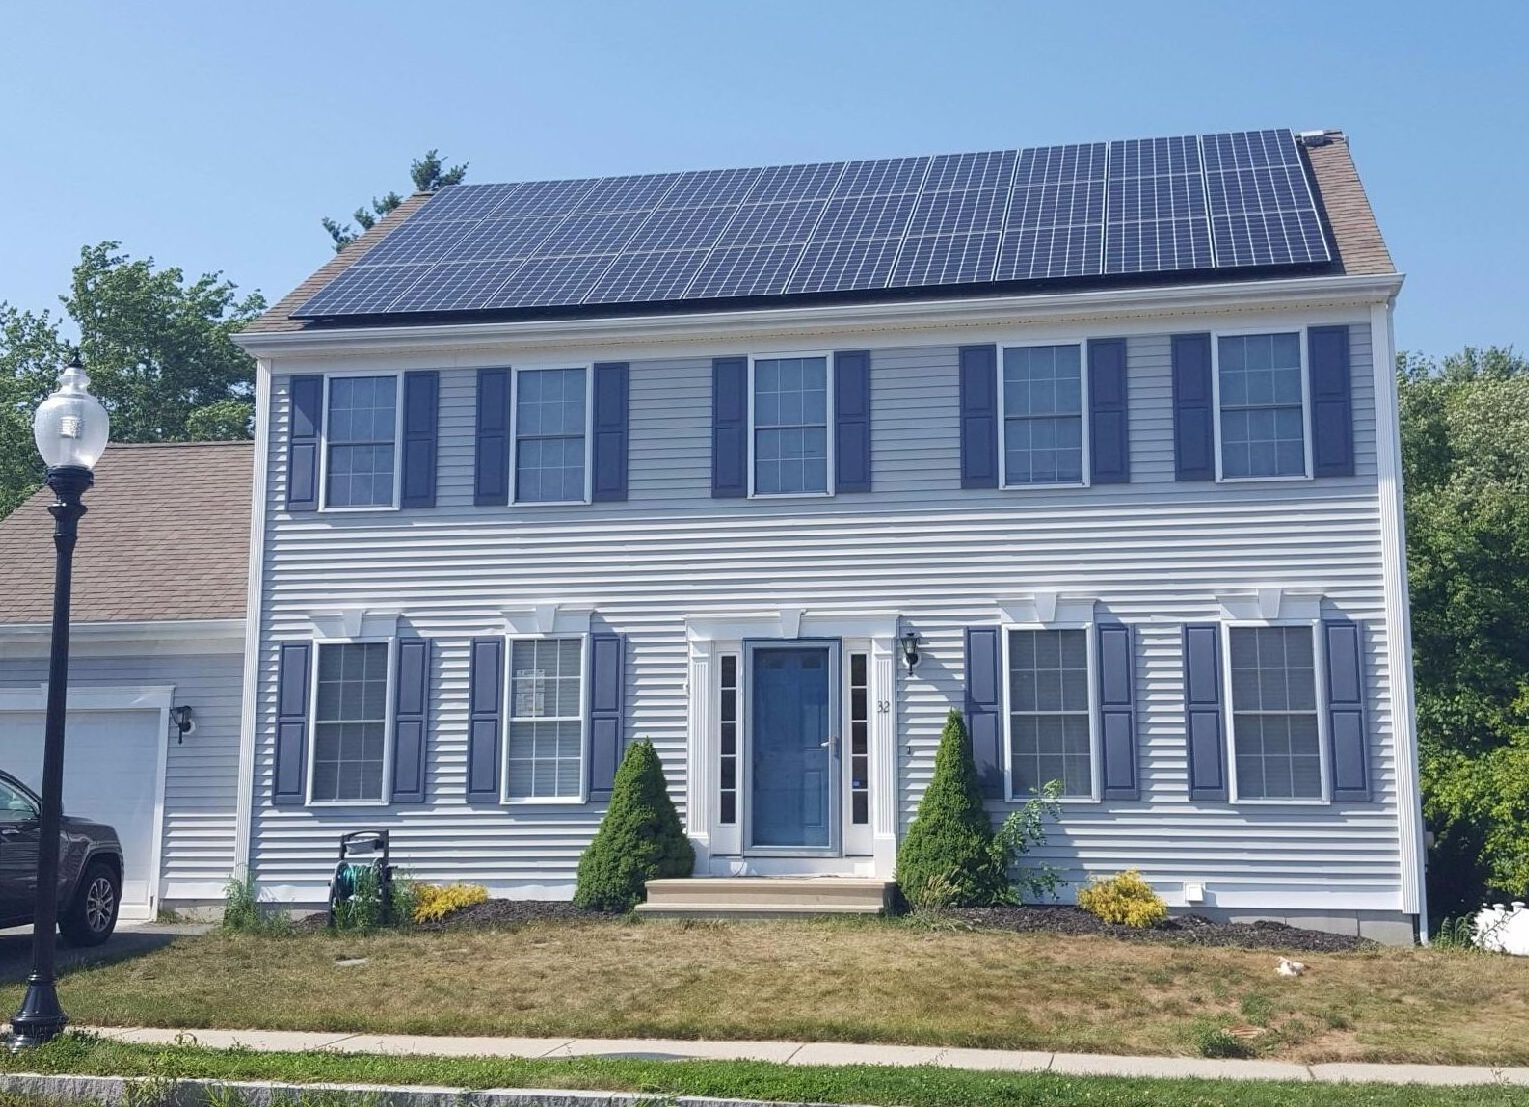 9.6-kW residential solar system